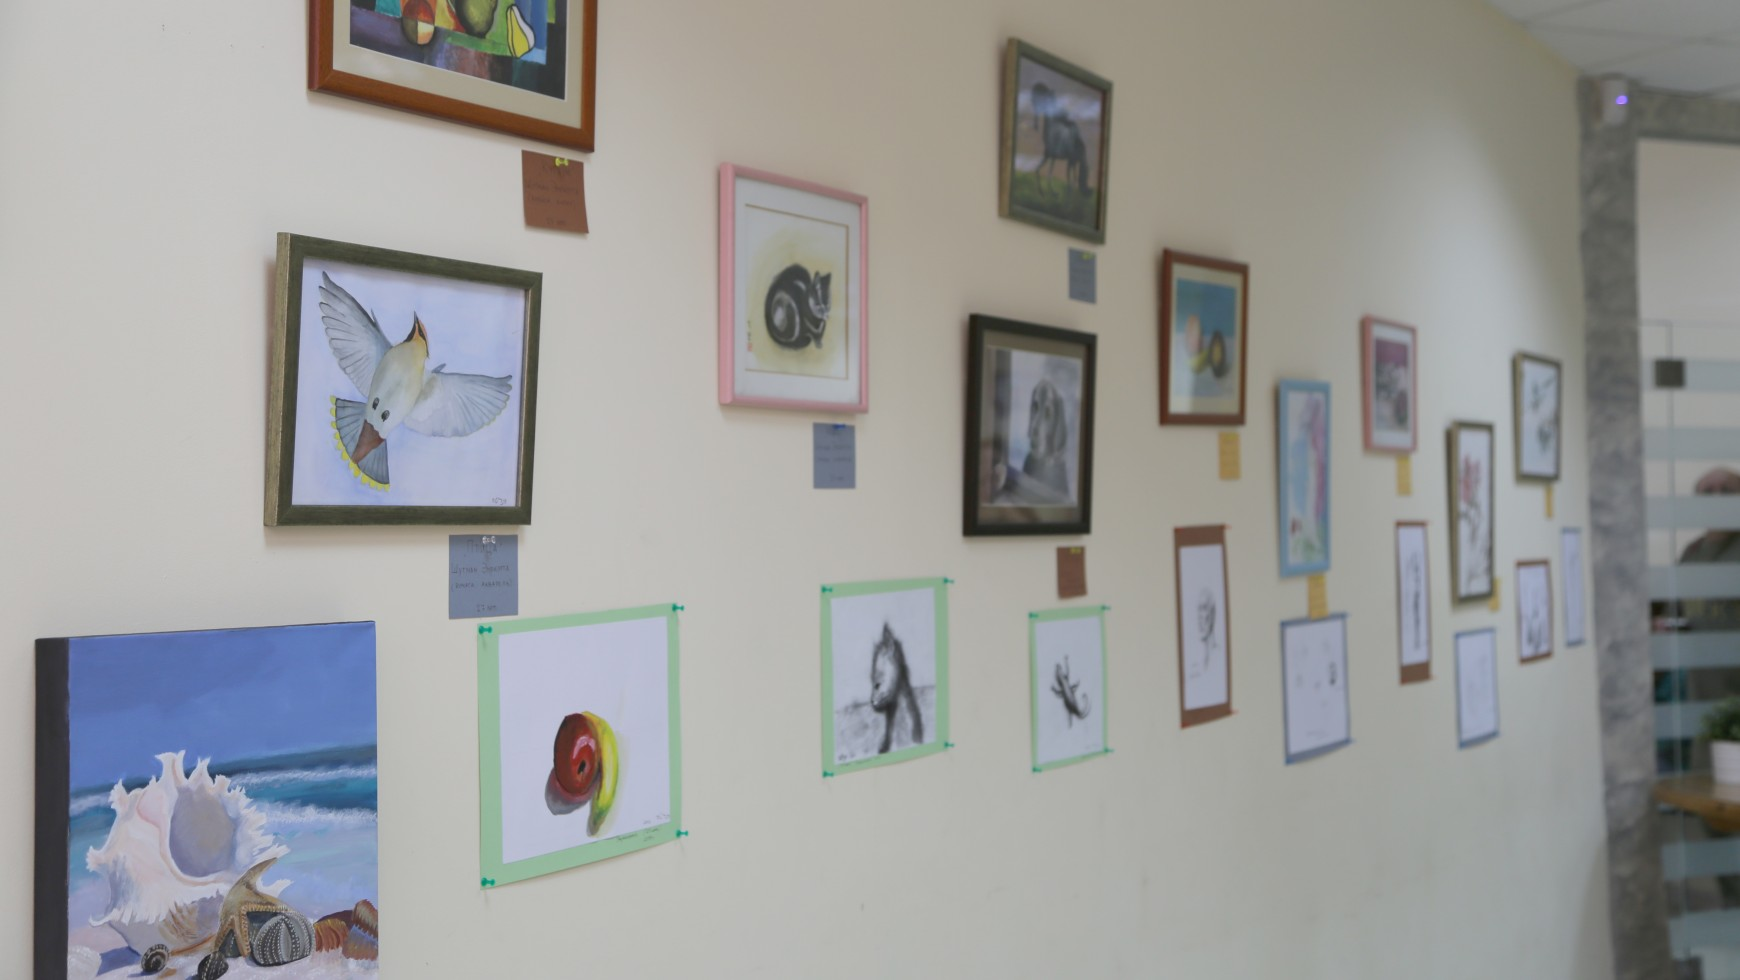 Art Exhibit at Beit Hallel Congregation for local Ashdod artists